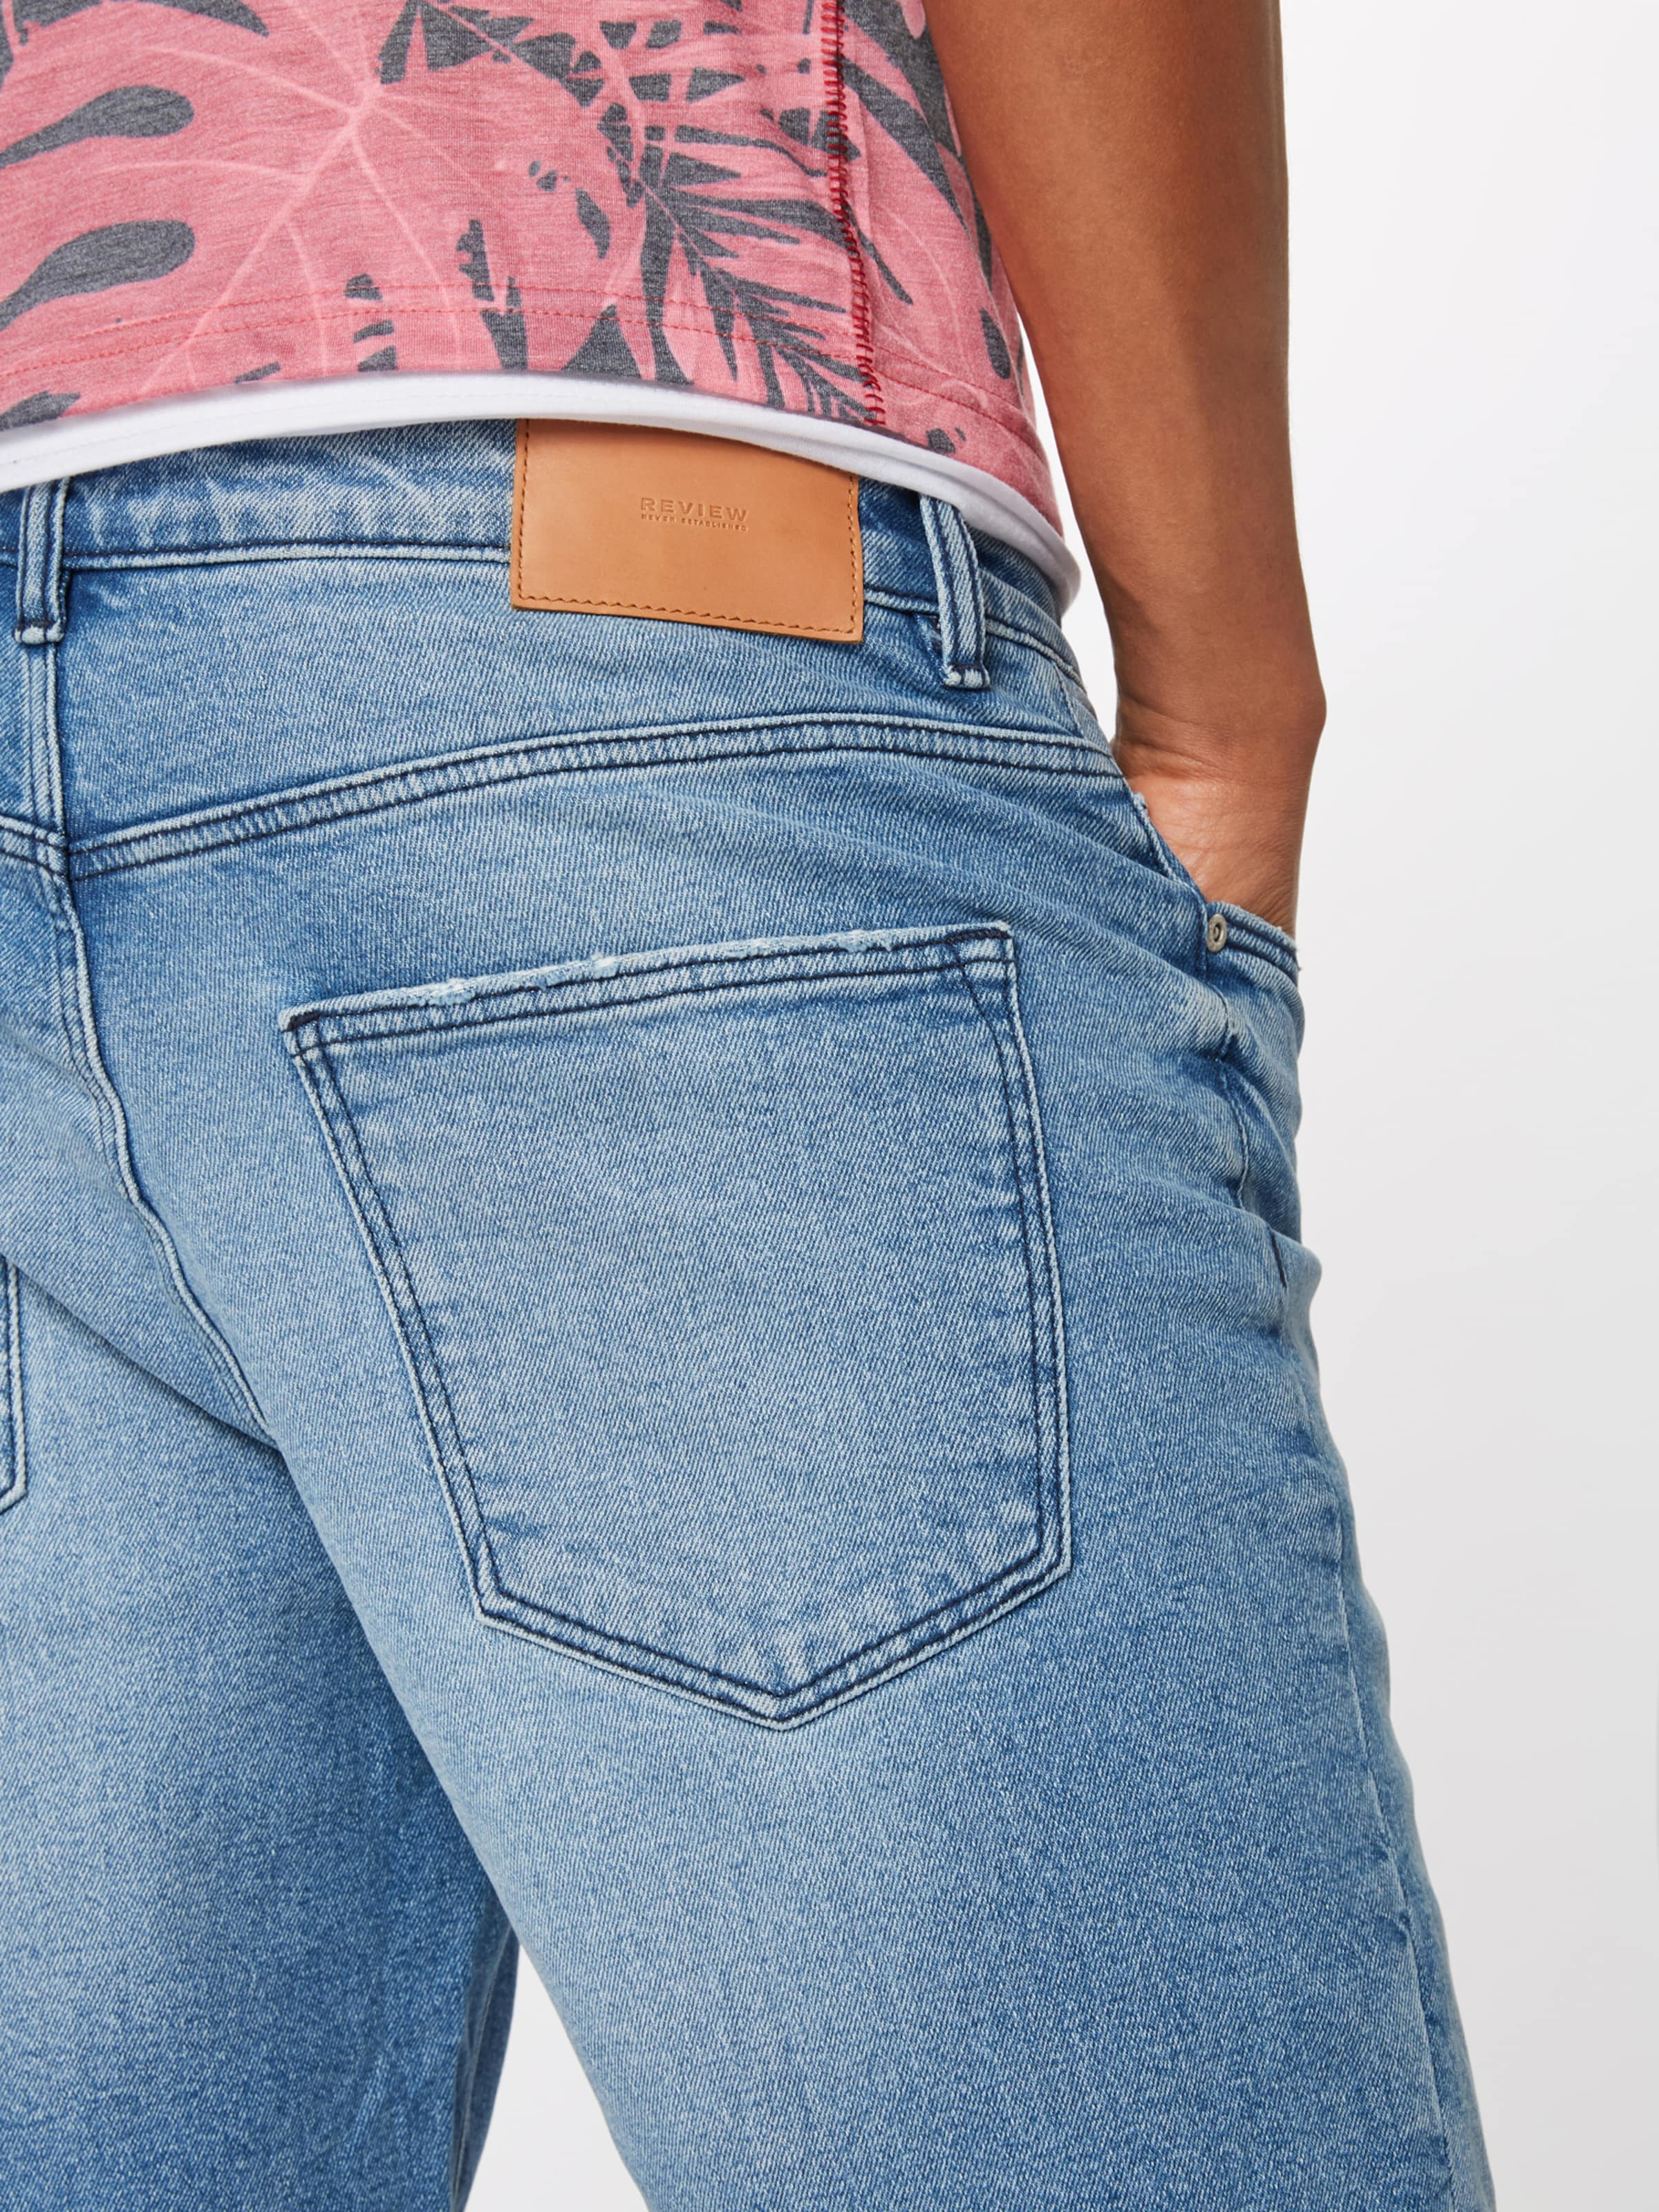 Review En Jean Denim Bleu 0nOkwP